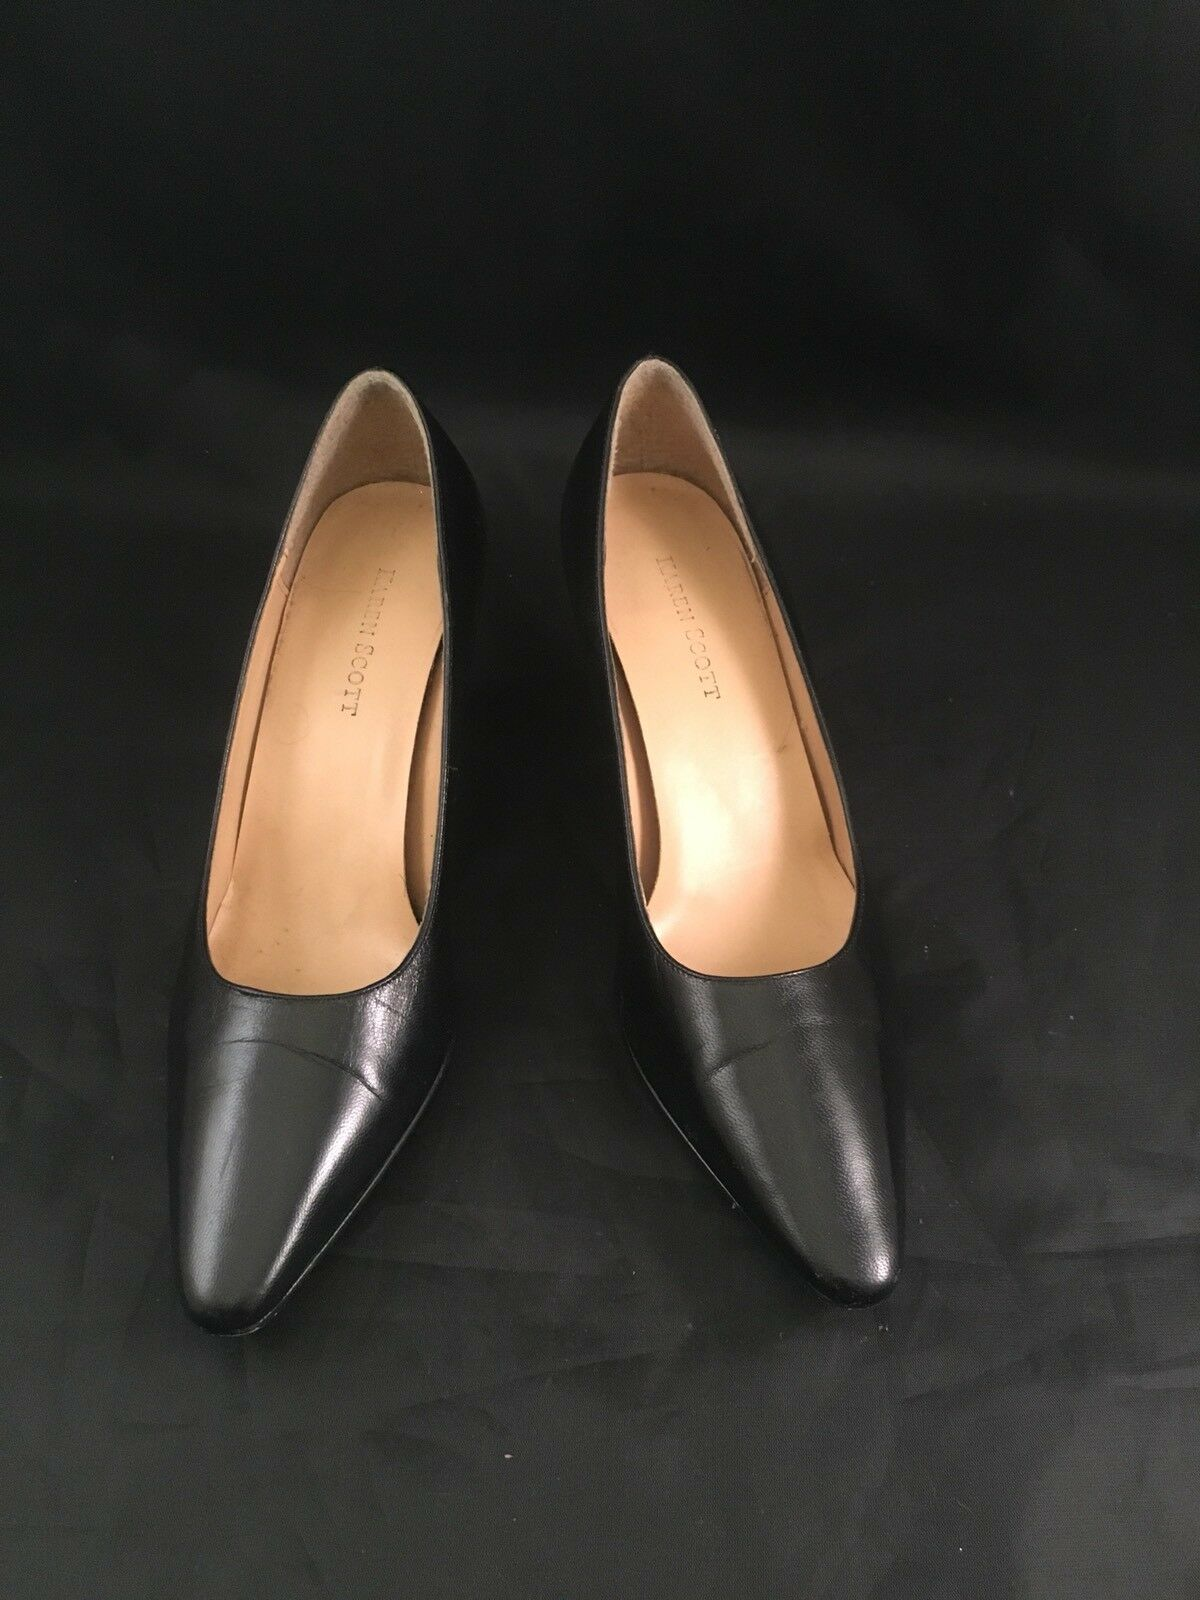 Karen Black Scott Clancy Womens Shoes Black Karen Size 7 1/2M Heels c65ef5